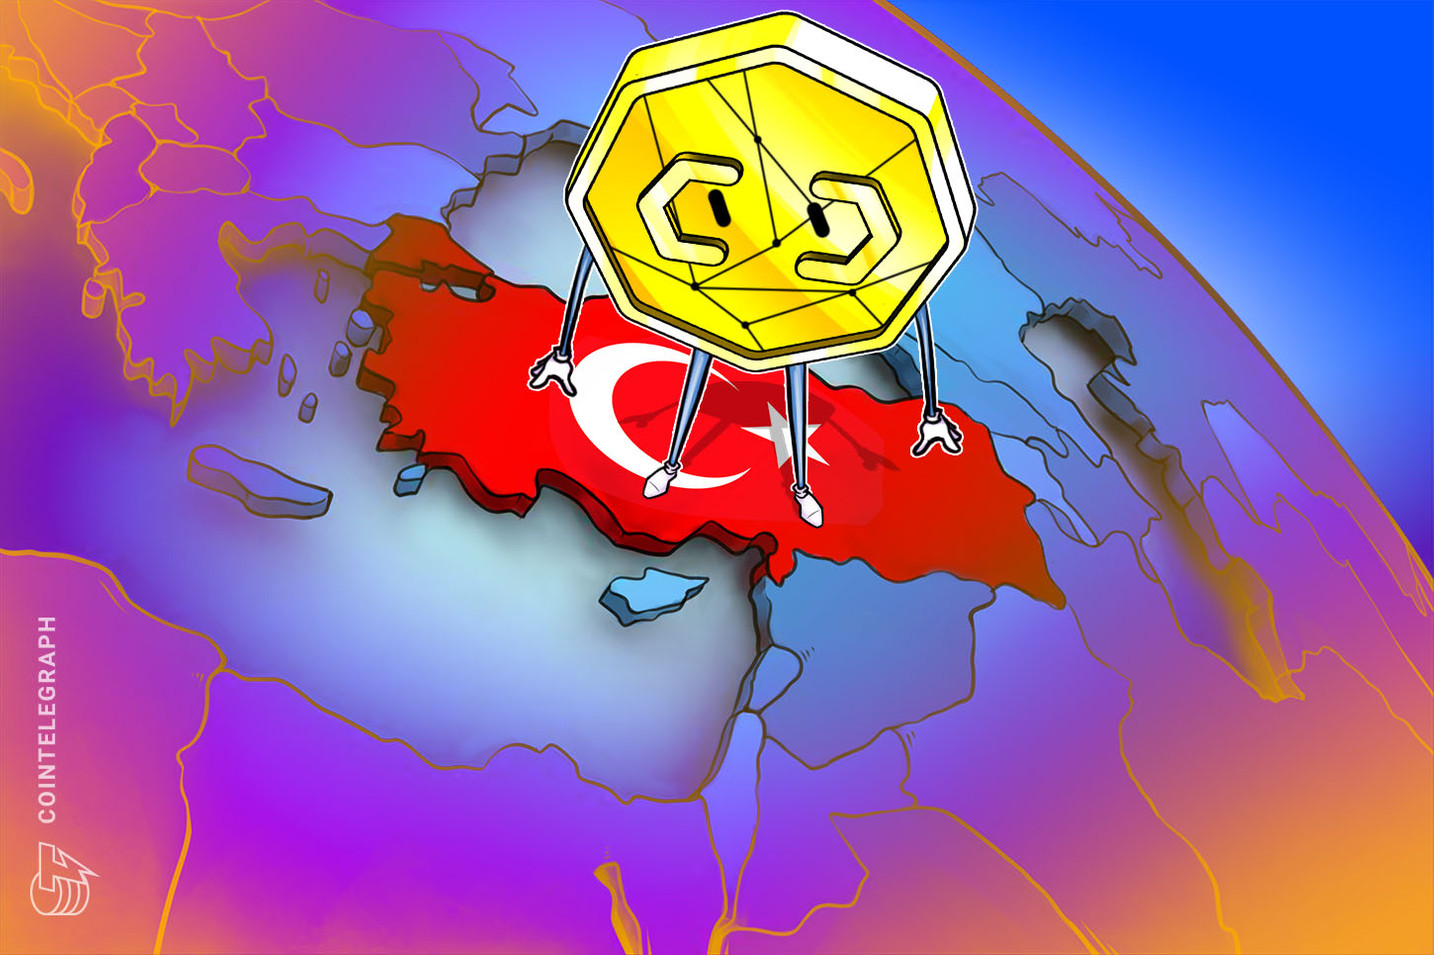 Crypto usage in Turkey increased elevenfold in a year, new survey shows